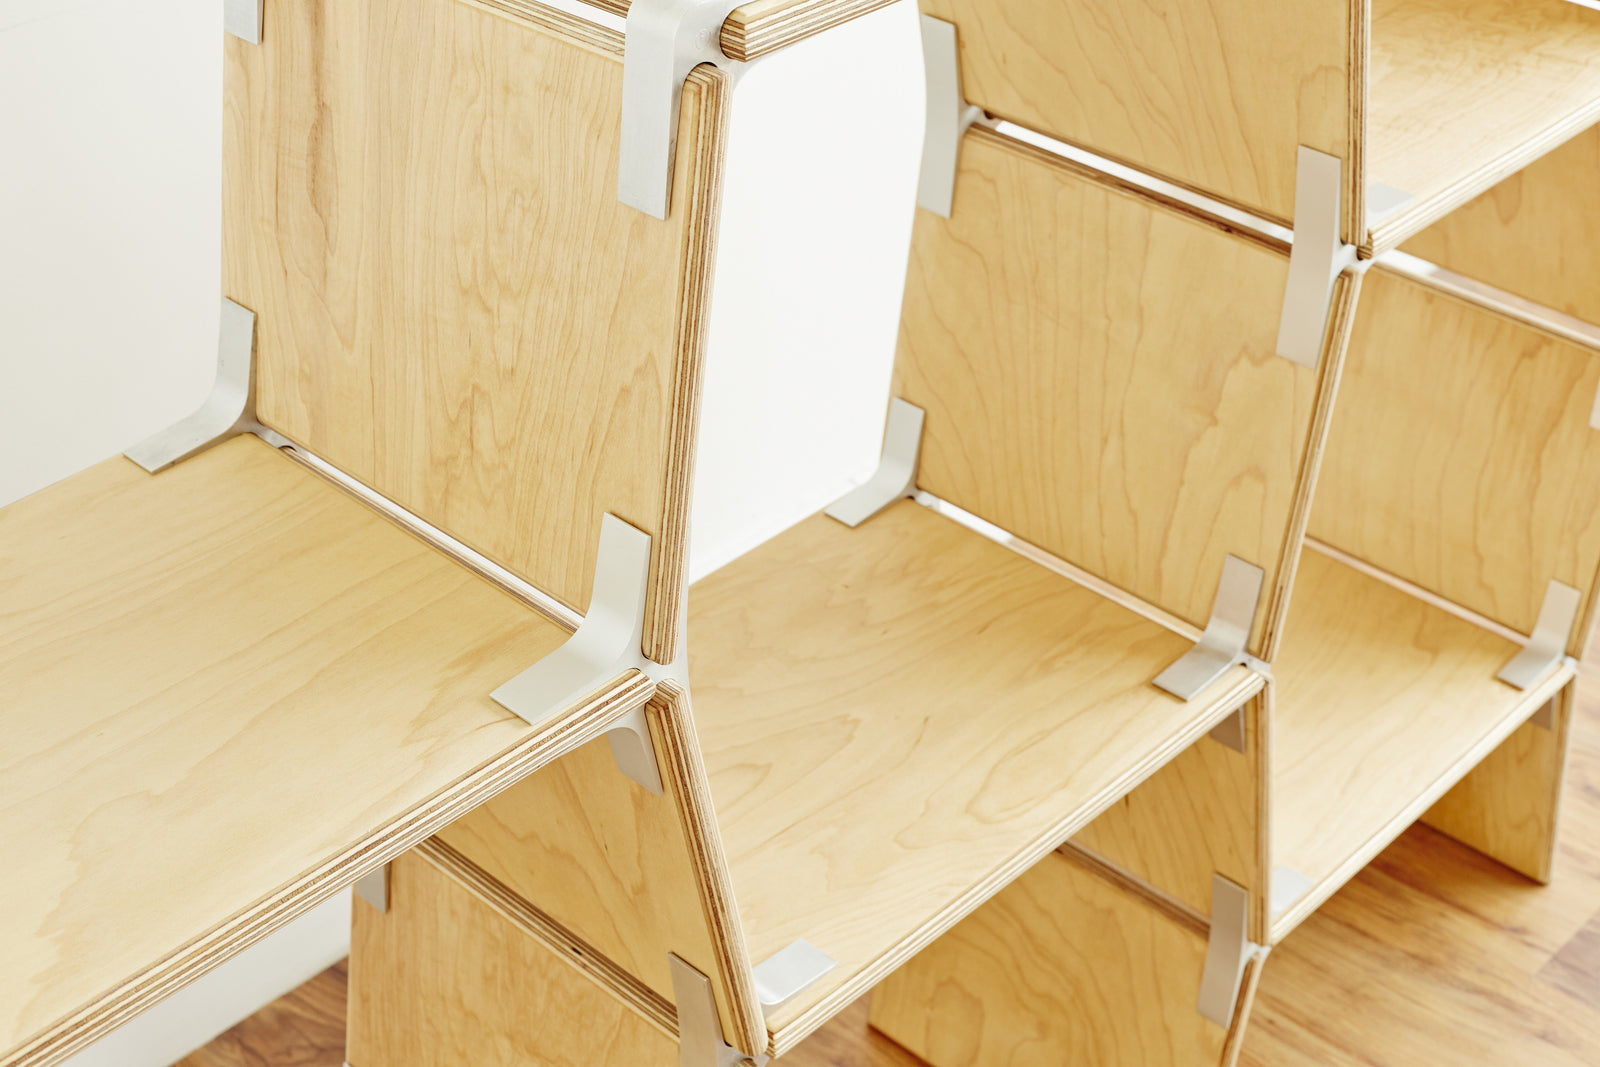 Modern modular furniture that 39 s easy to customize and for Furniture tipoi design